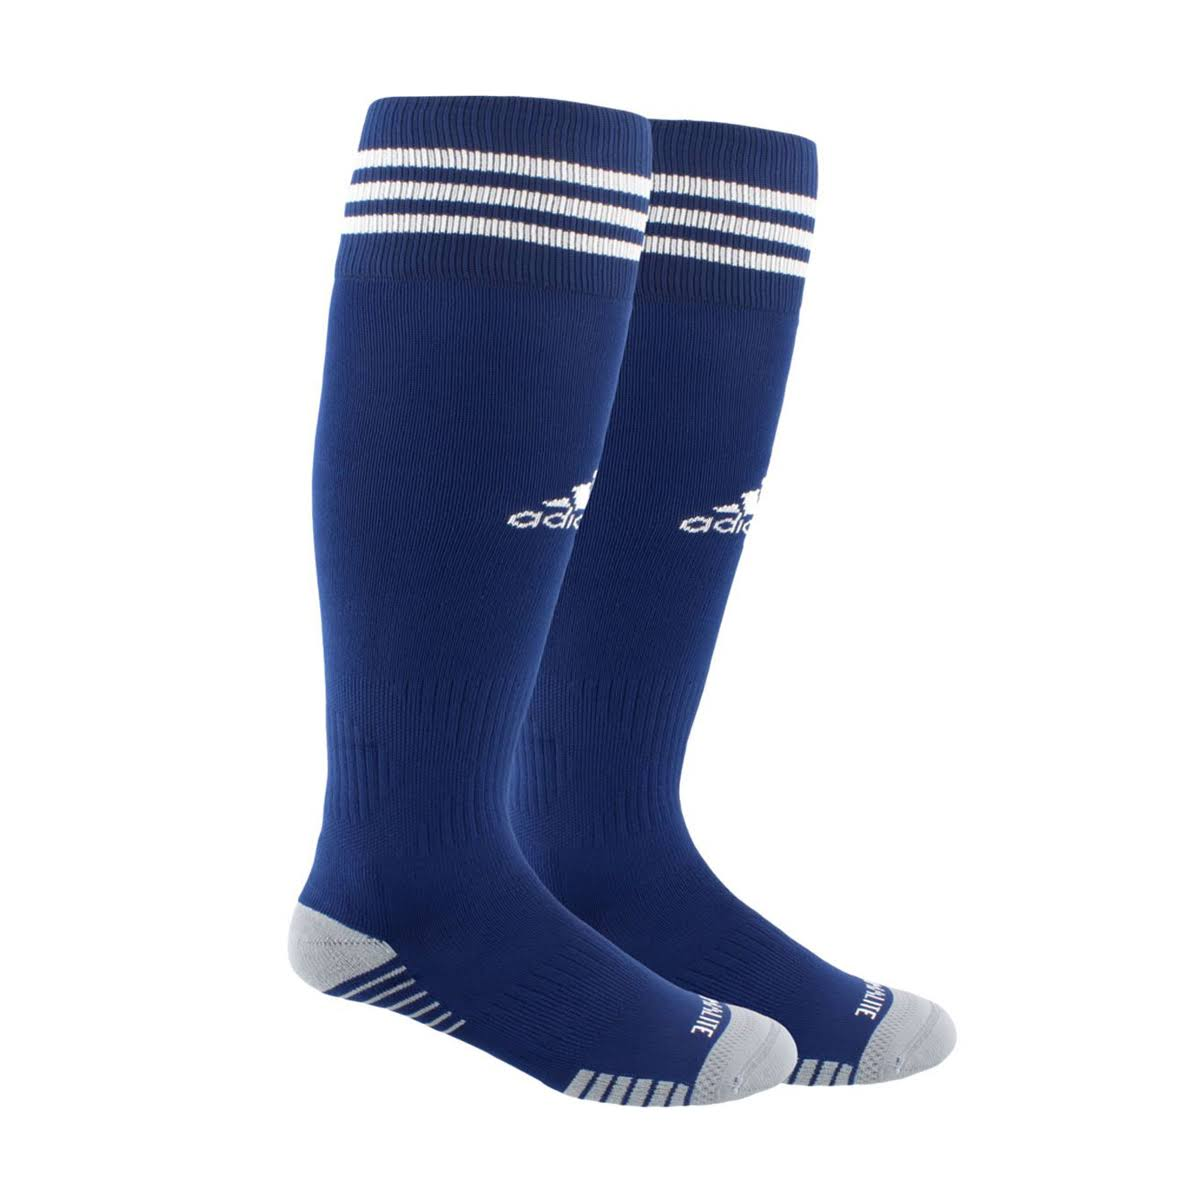 Adidas Copa Zone Cushion IV Socks - Navy/White - M